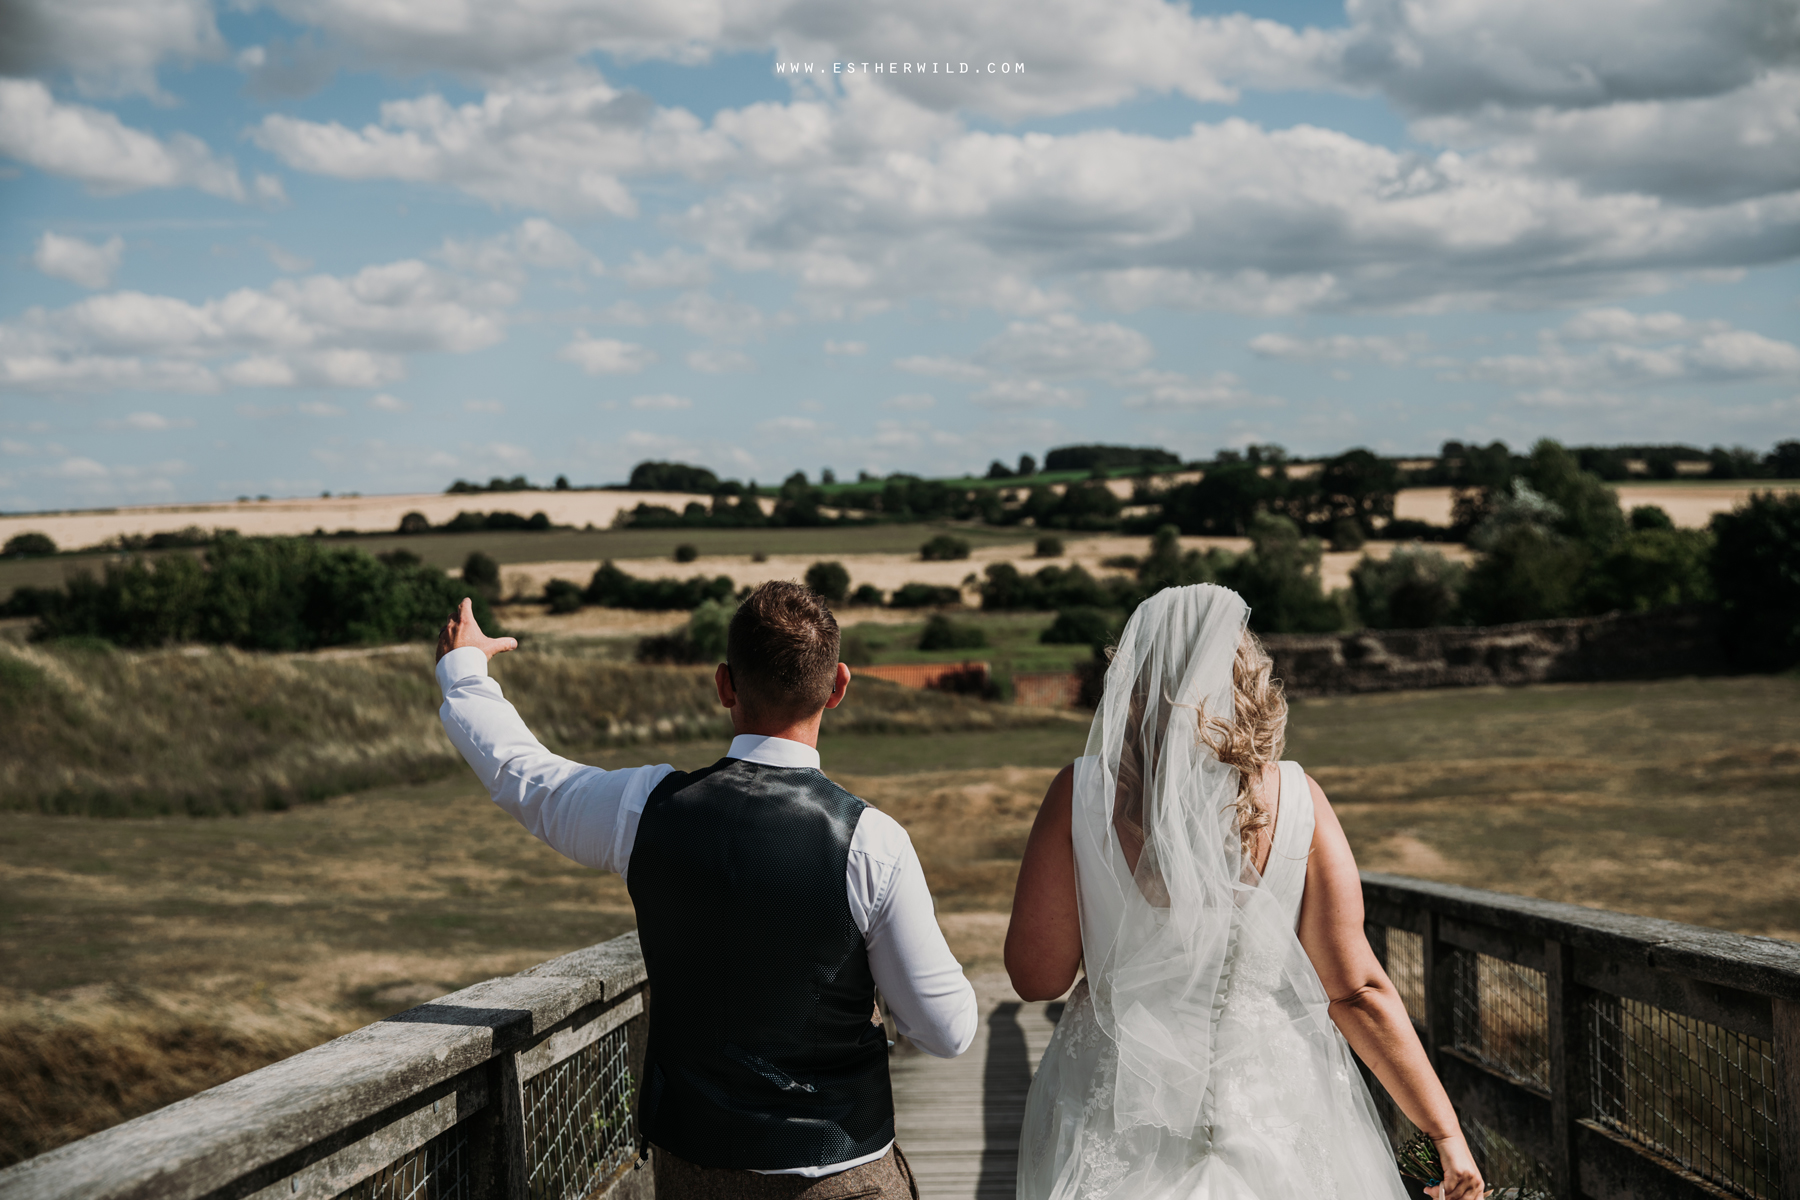 Swaffham_Wedding_Castle_Acre_Norfolk_Esther_Wild_Photographer_Wedding_Photography_3R8A1467.jpg